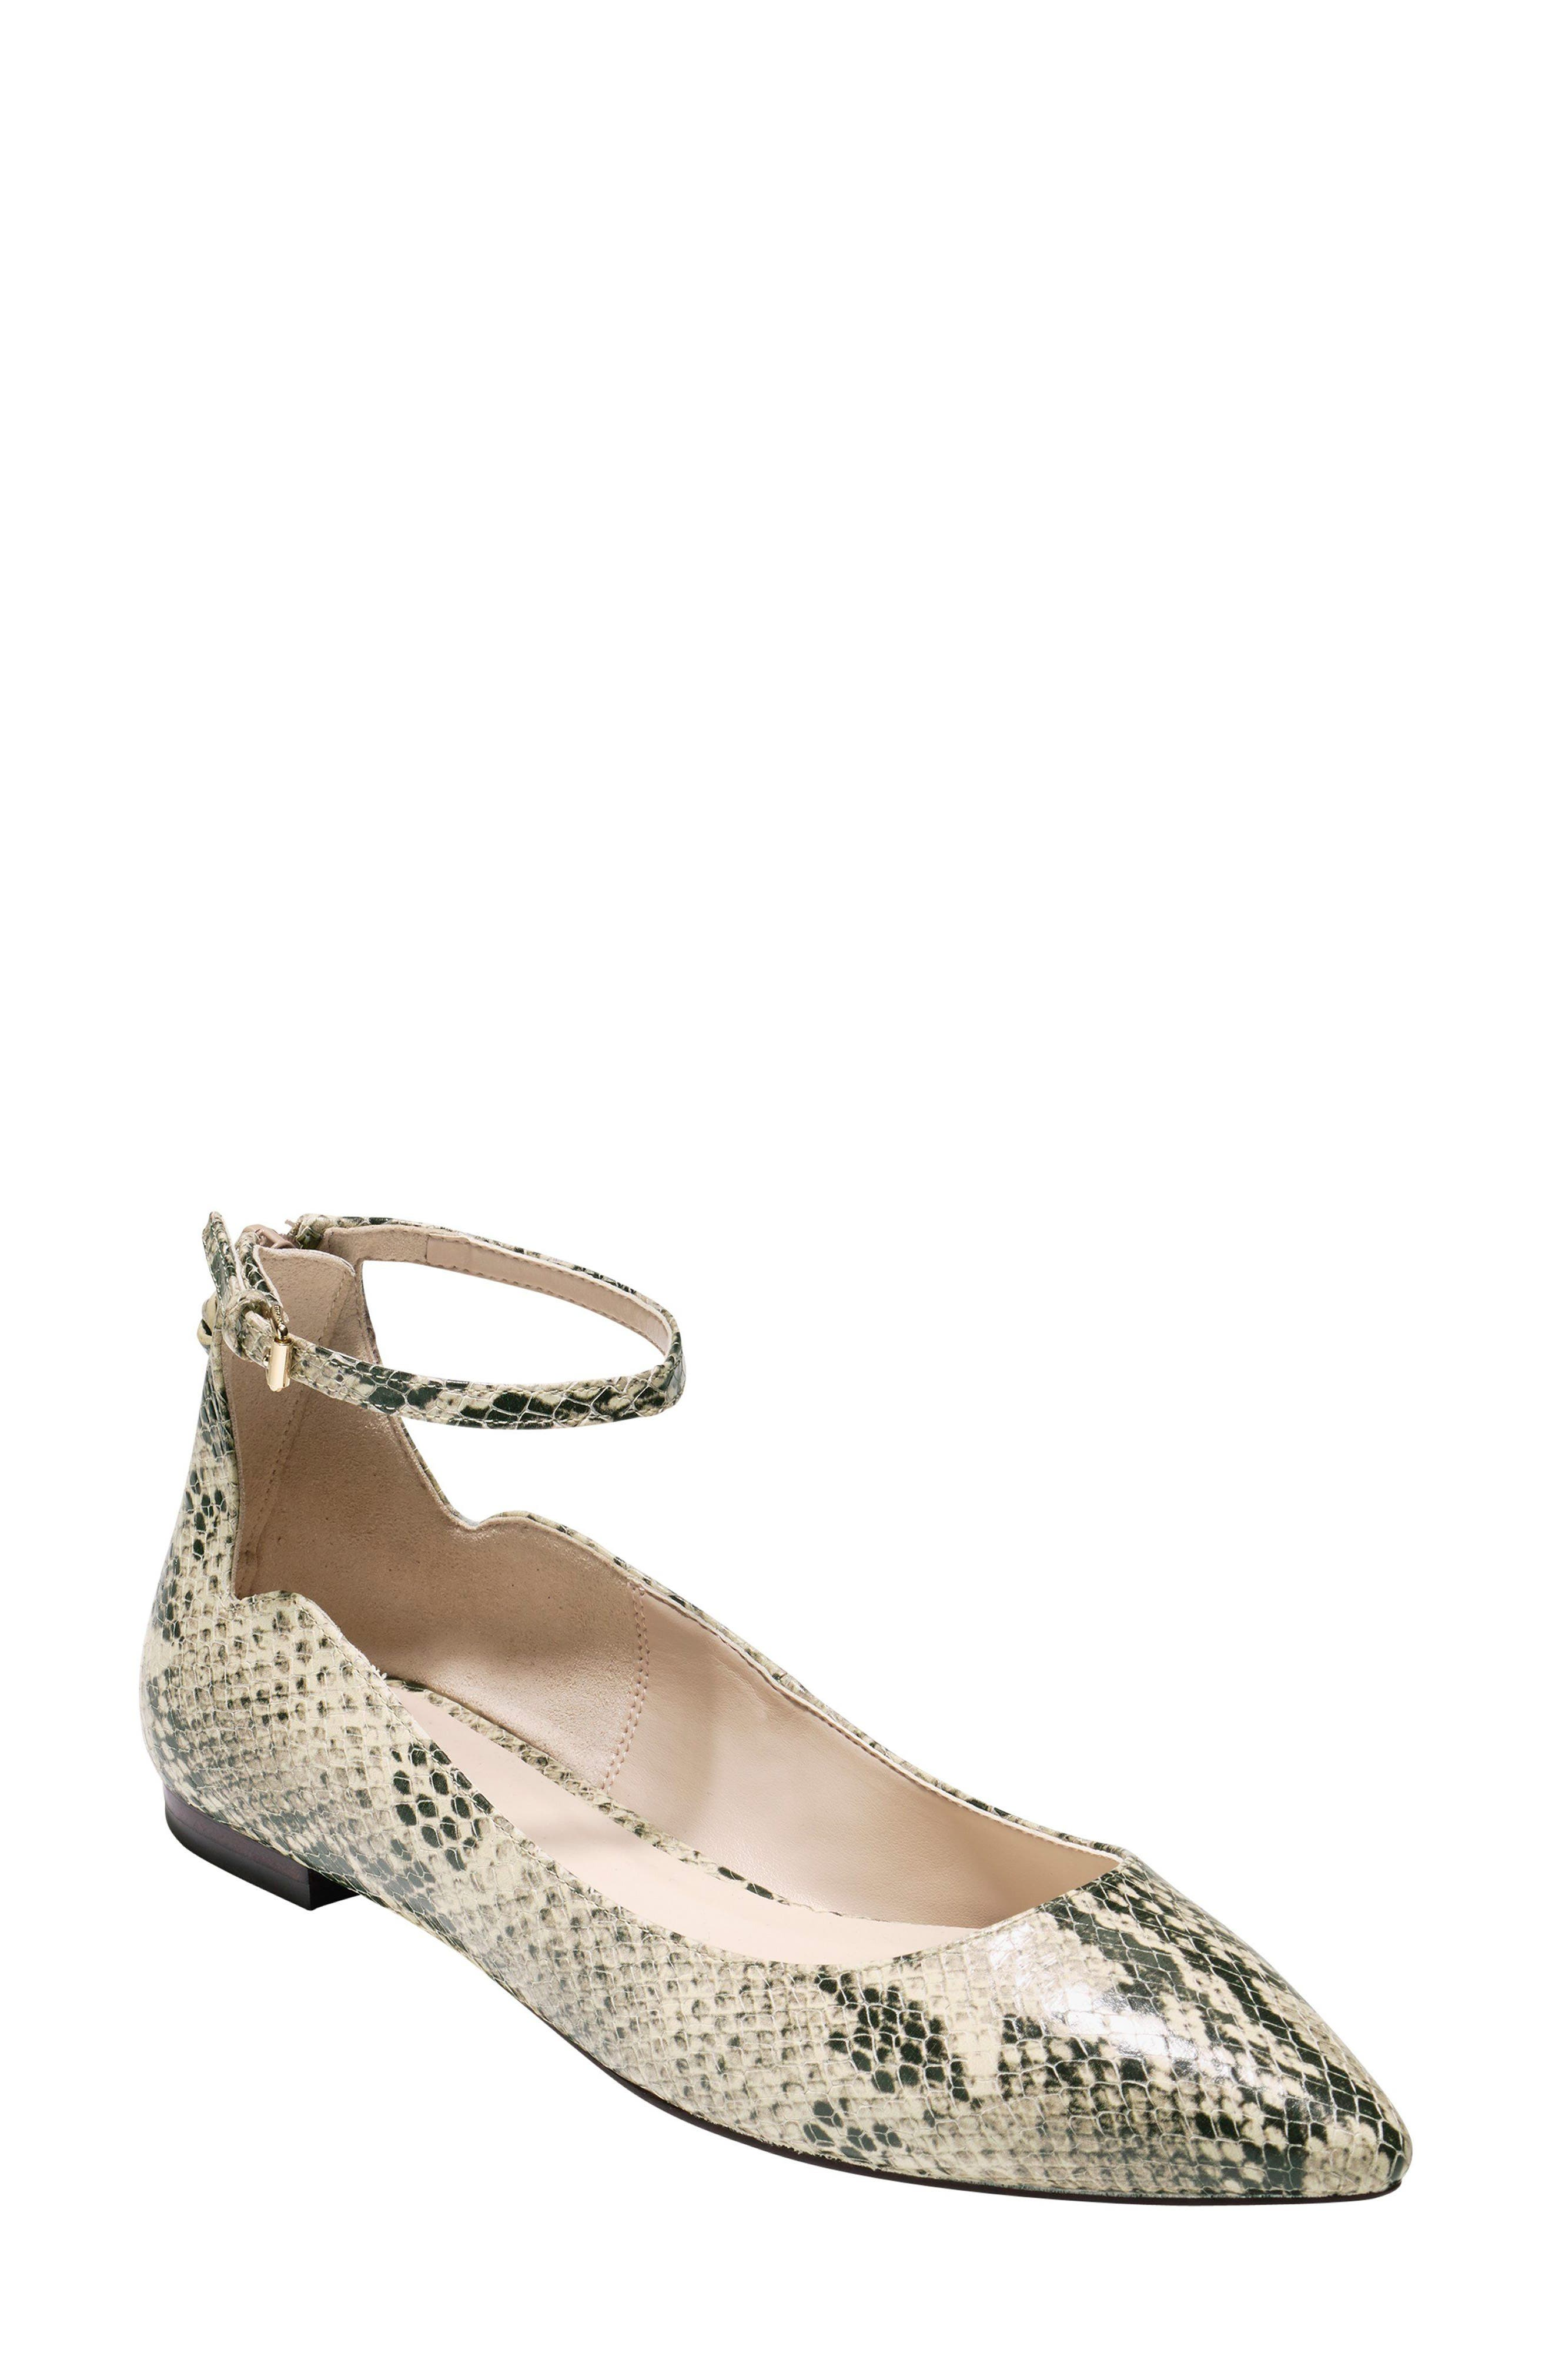 COLE HAAN Millicent Ankle Strap Skimmer Flat